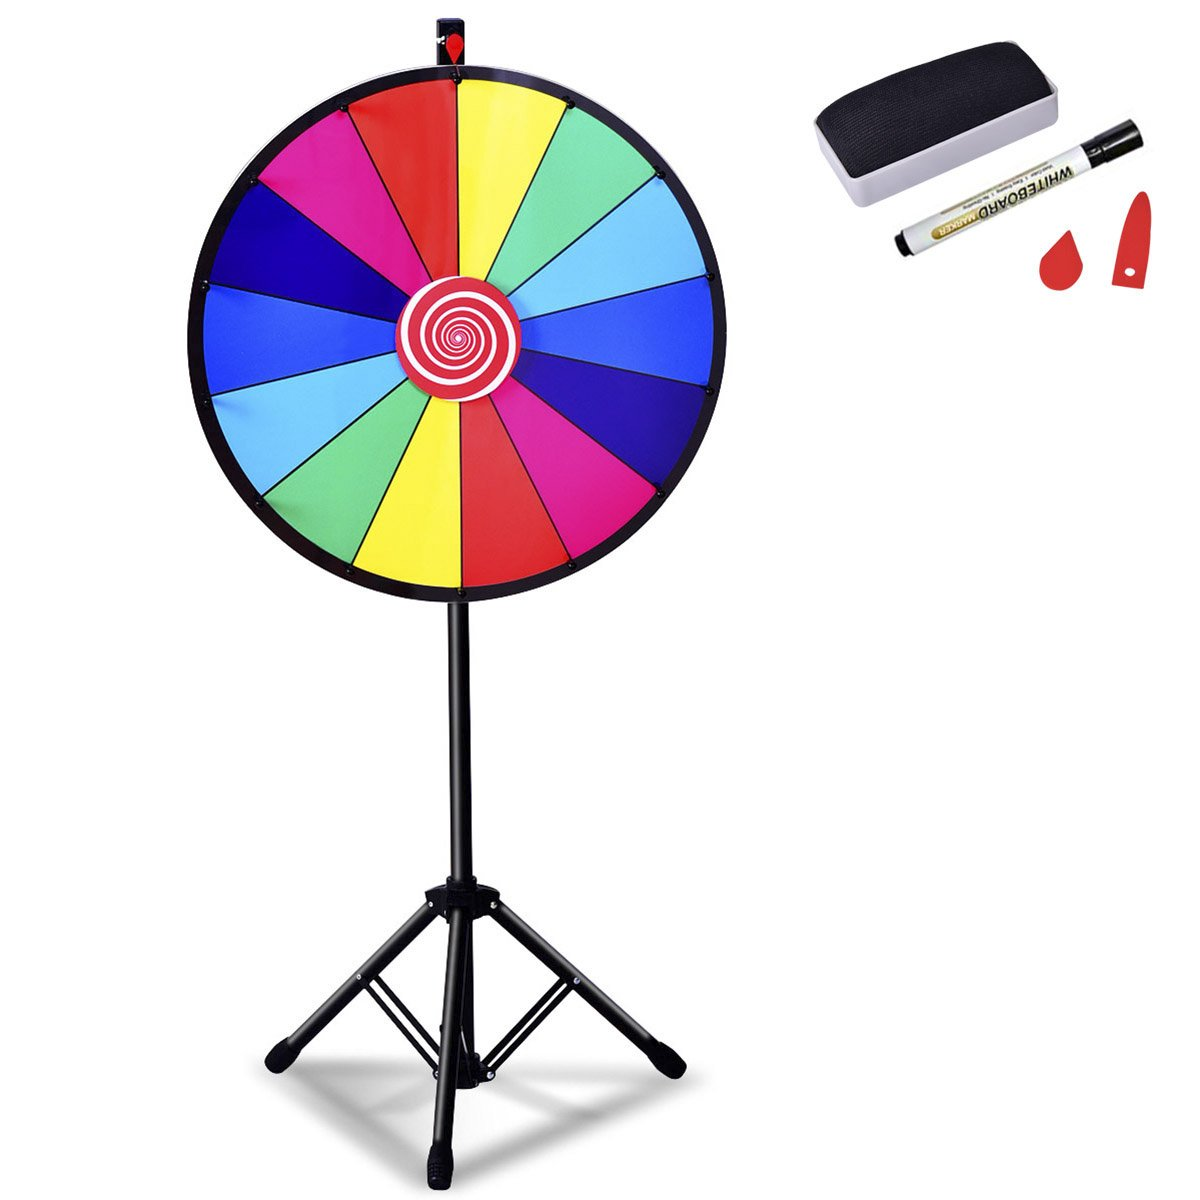 Giantex 24'' Spinning Prize Wheel with Adjustable Tripod Floor Stand Editable Dry Erase Color 14 Slots Tradeshow Carnival Fortune Spinning Game